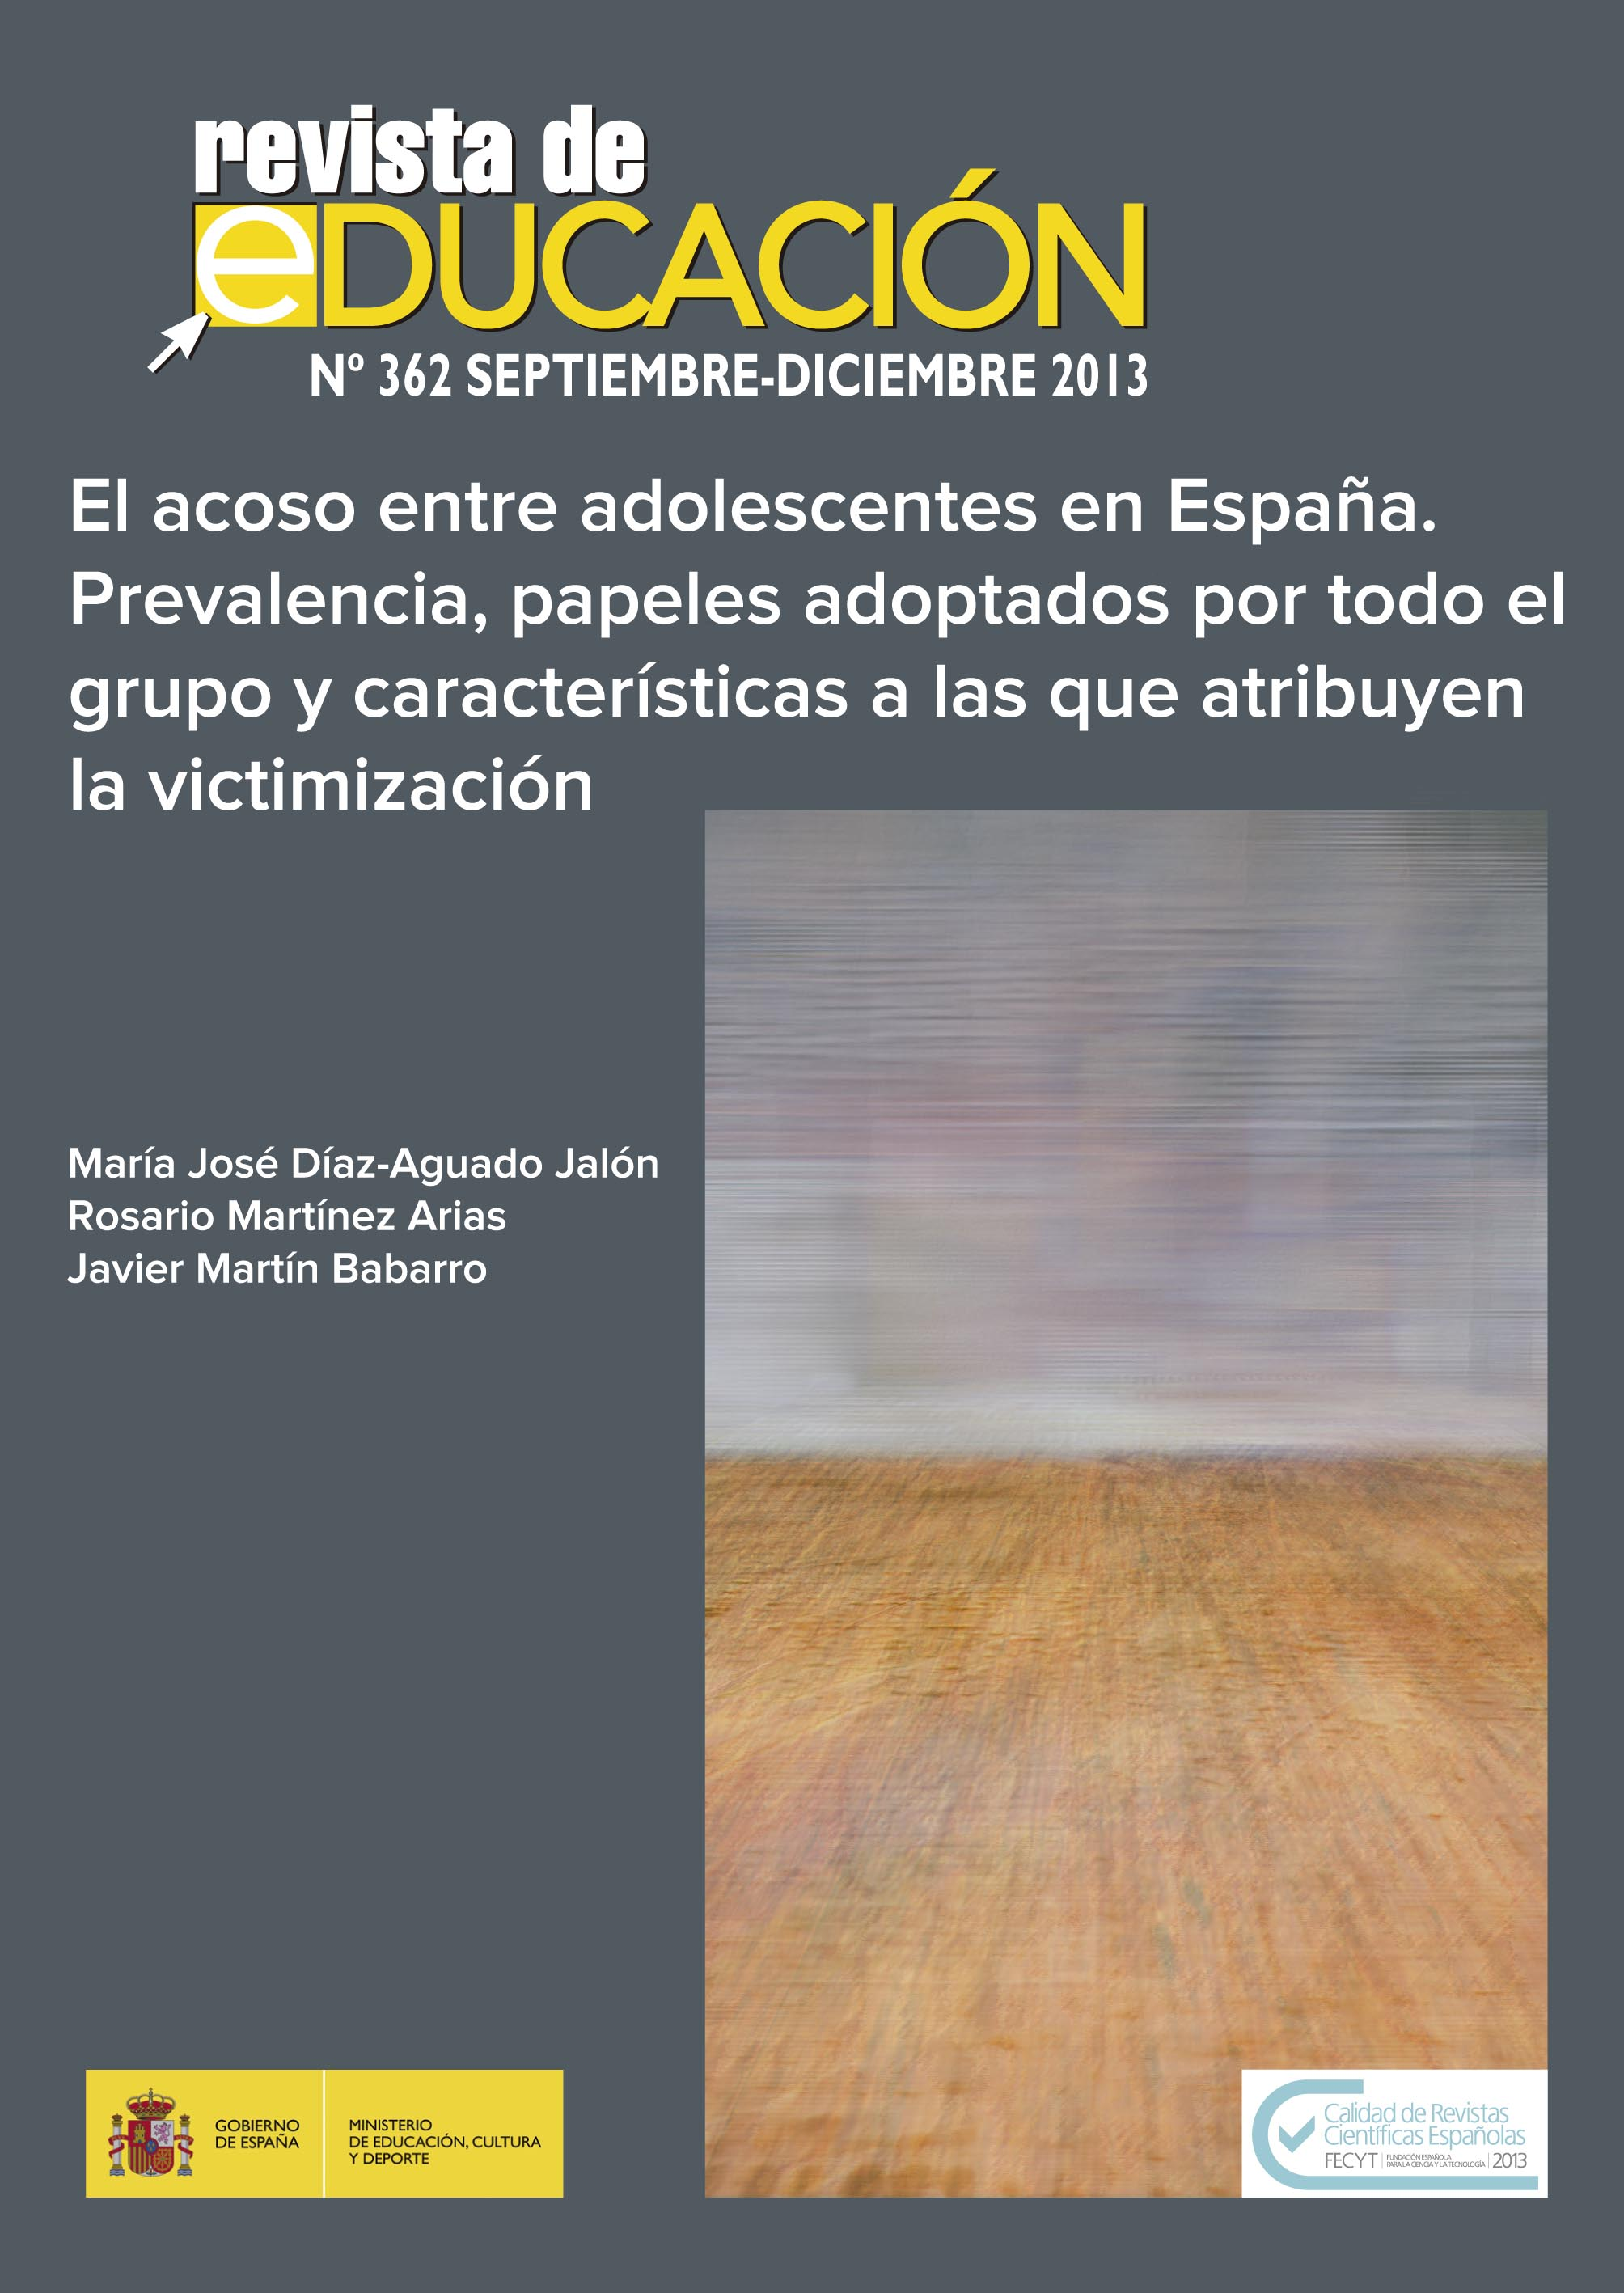 el-acoso-entre-adolescentes-en-espana-prevalencia-papeles-adoptados-por-todo-el-grupo-y-caracteristicas-a-las-que-atribuyen-la-victimizacion--bullying-among-dolescents-in-spain-prevalence-participants--roles-and-characteristics-attributable-to-victimization-by-victims-and-aggressors